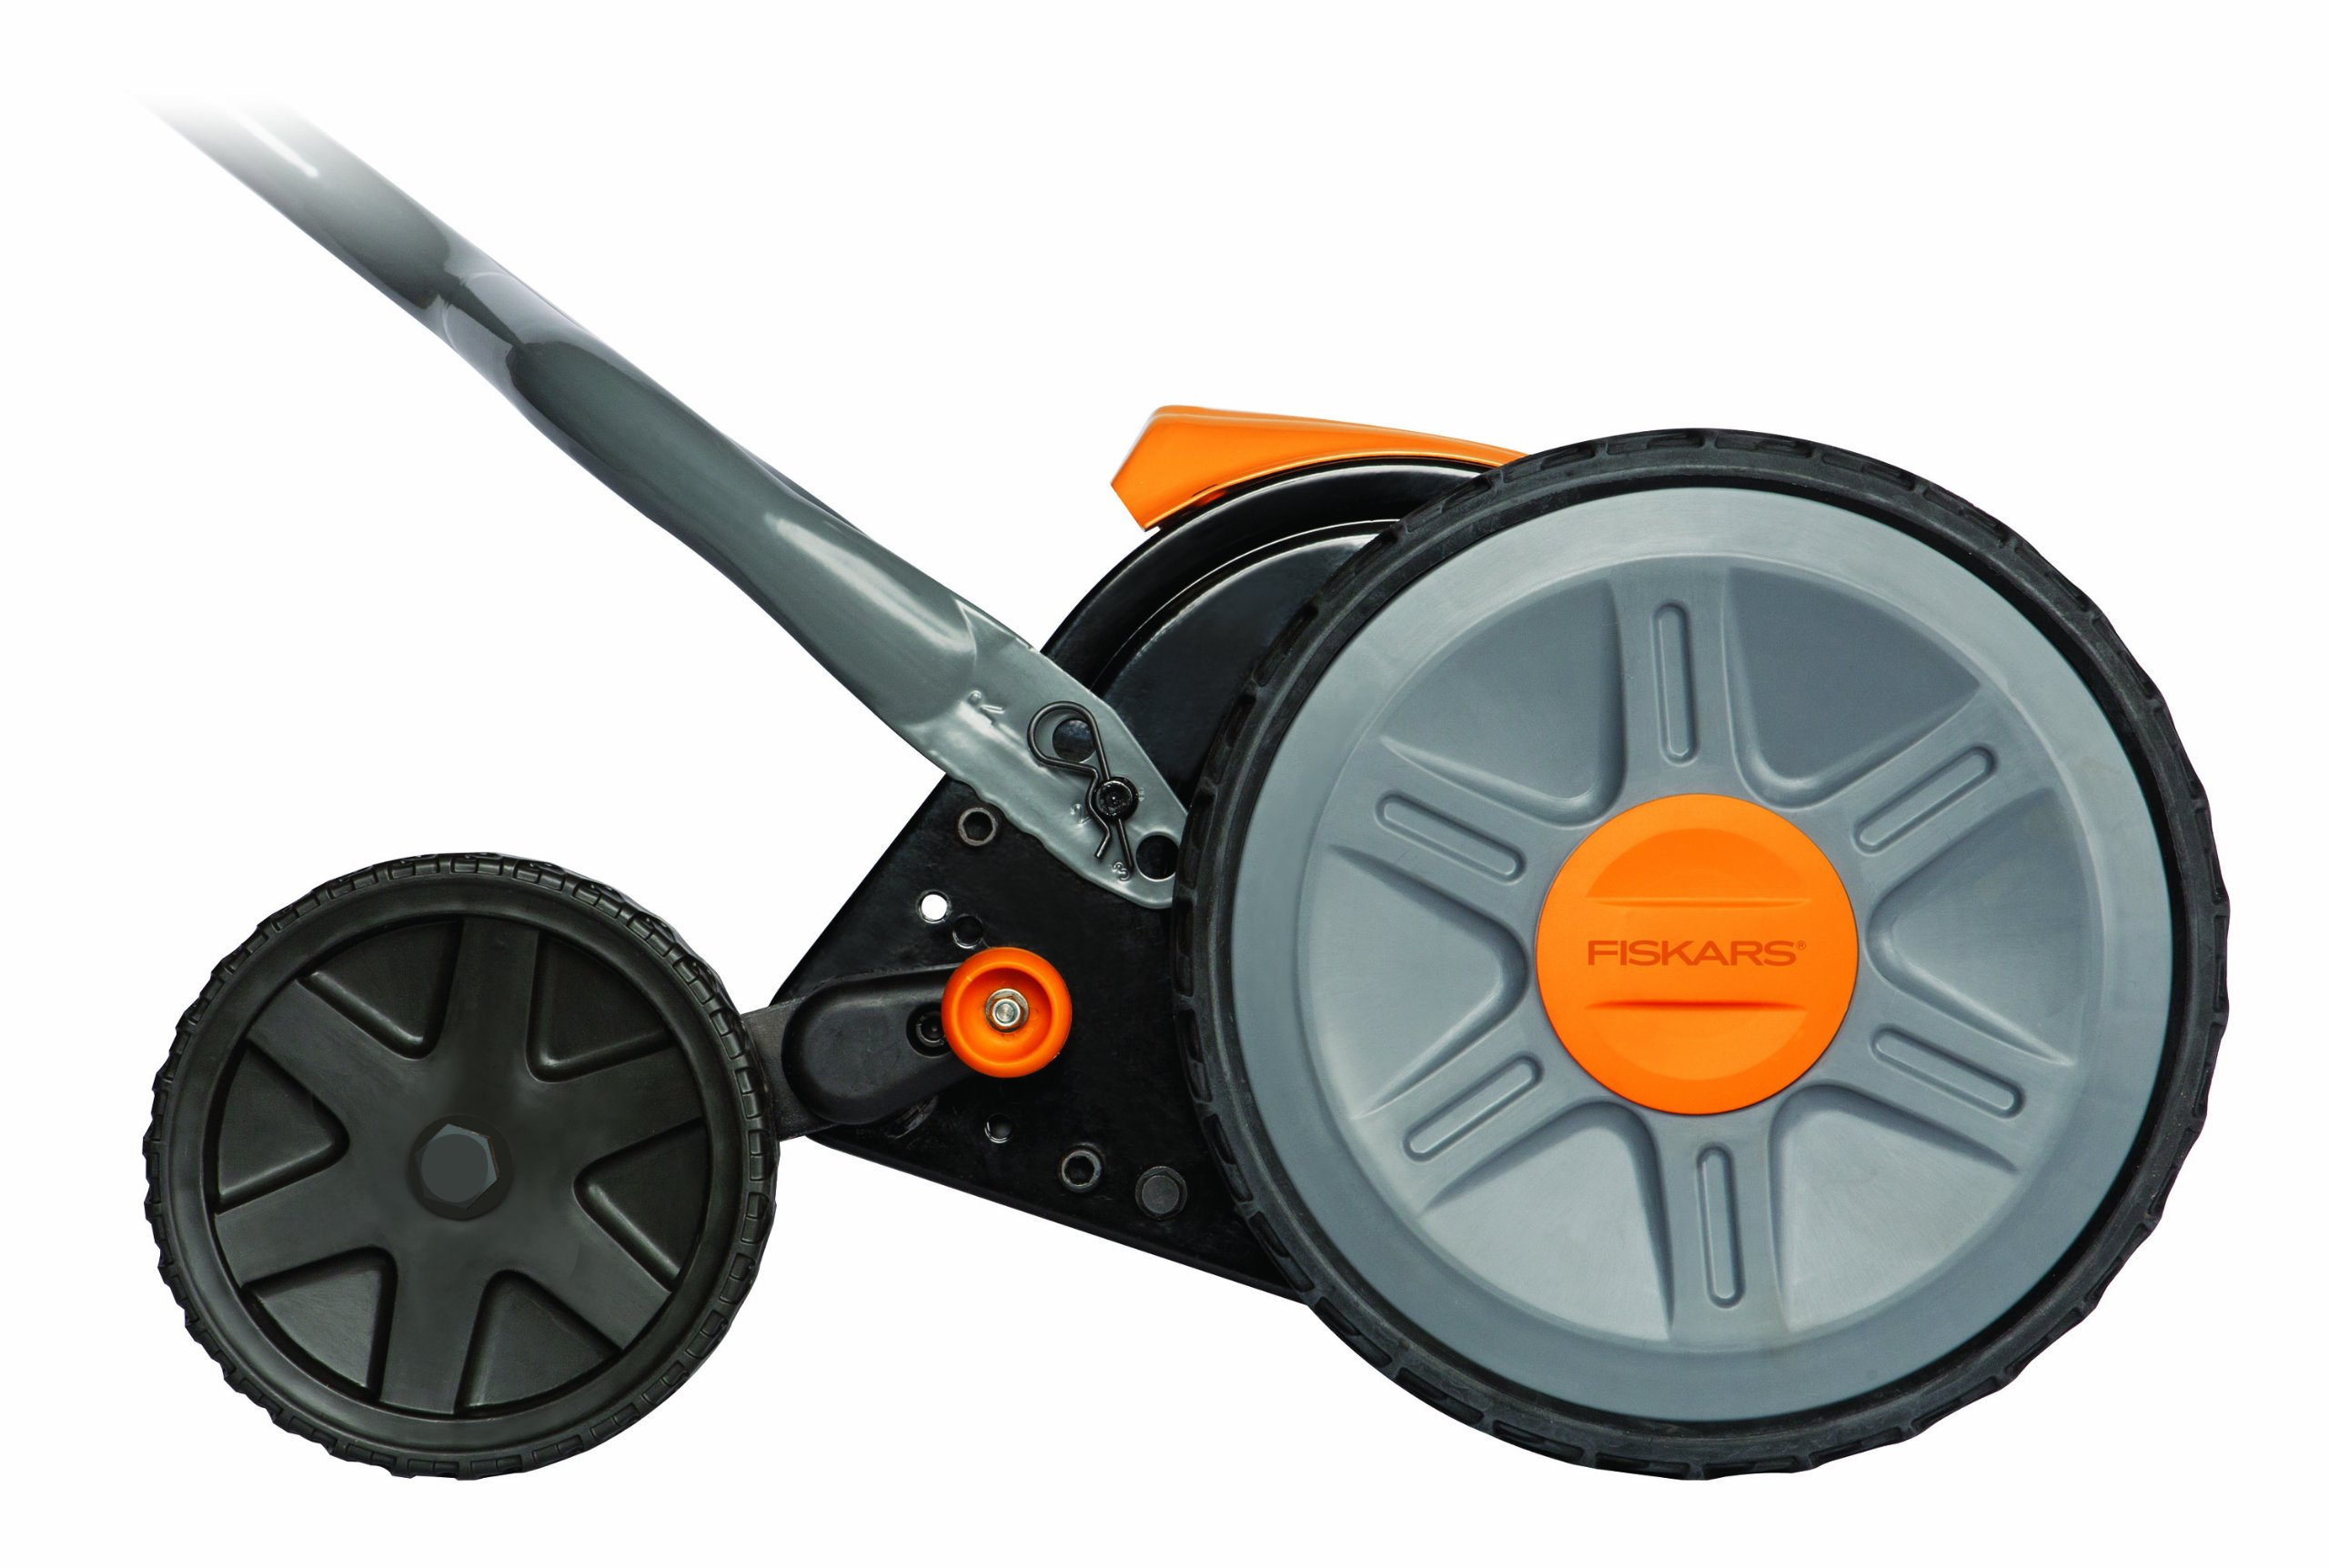 Fiskars 17 inch Staysharp Push Reel Lawn Mower (6208) (Pack of 2) 3 The smart design of our eco-friendly reel mower offers a cleaner cut without the hassles of gasoline, oil, battery charging, electrical cords or loud engine noise A combination of advanced technologies make the StaySharp Reel Mower 30 percent easier to push than other reel mowers Patent-pending InertiaDrive Reel delivers 50 percent more cutting power to blast through twigs, weeds and tough spots that would jam other reel mowers